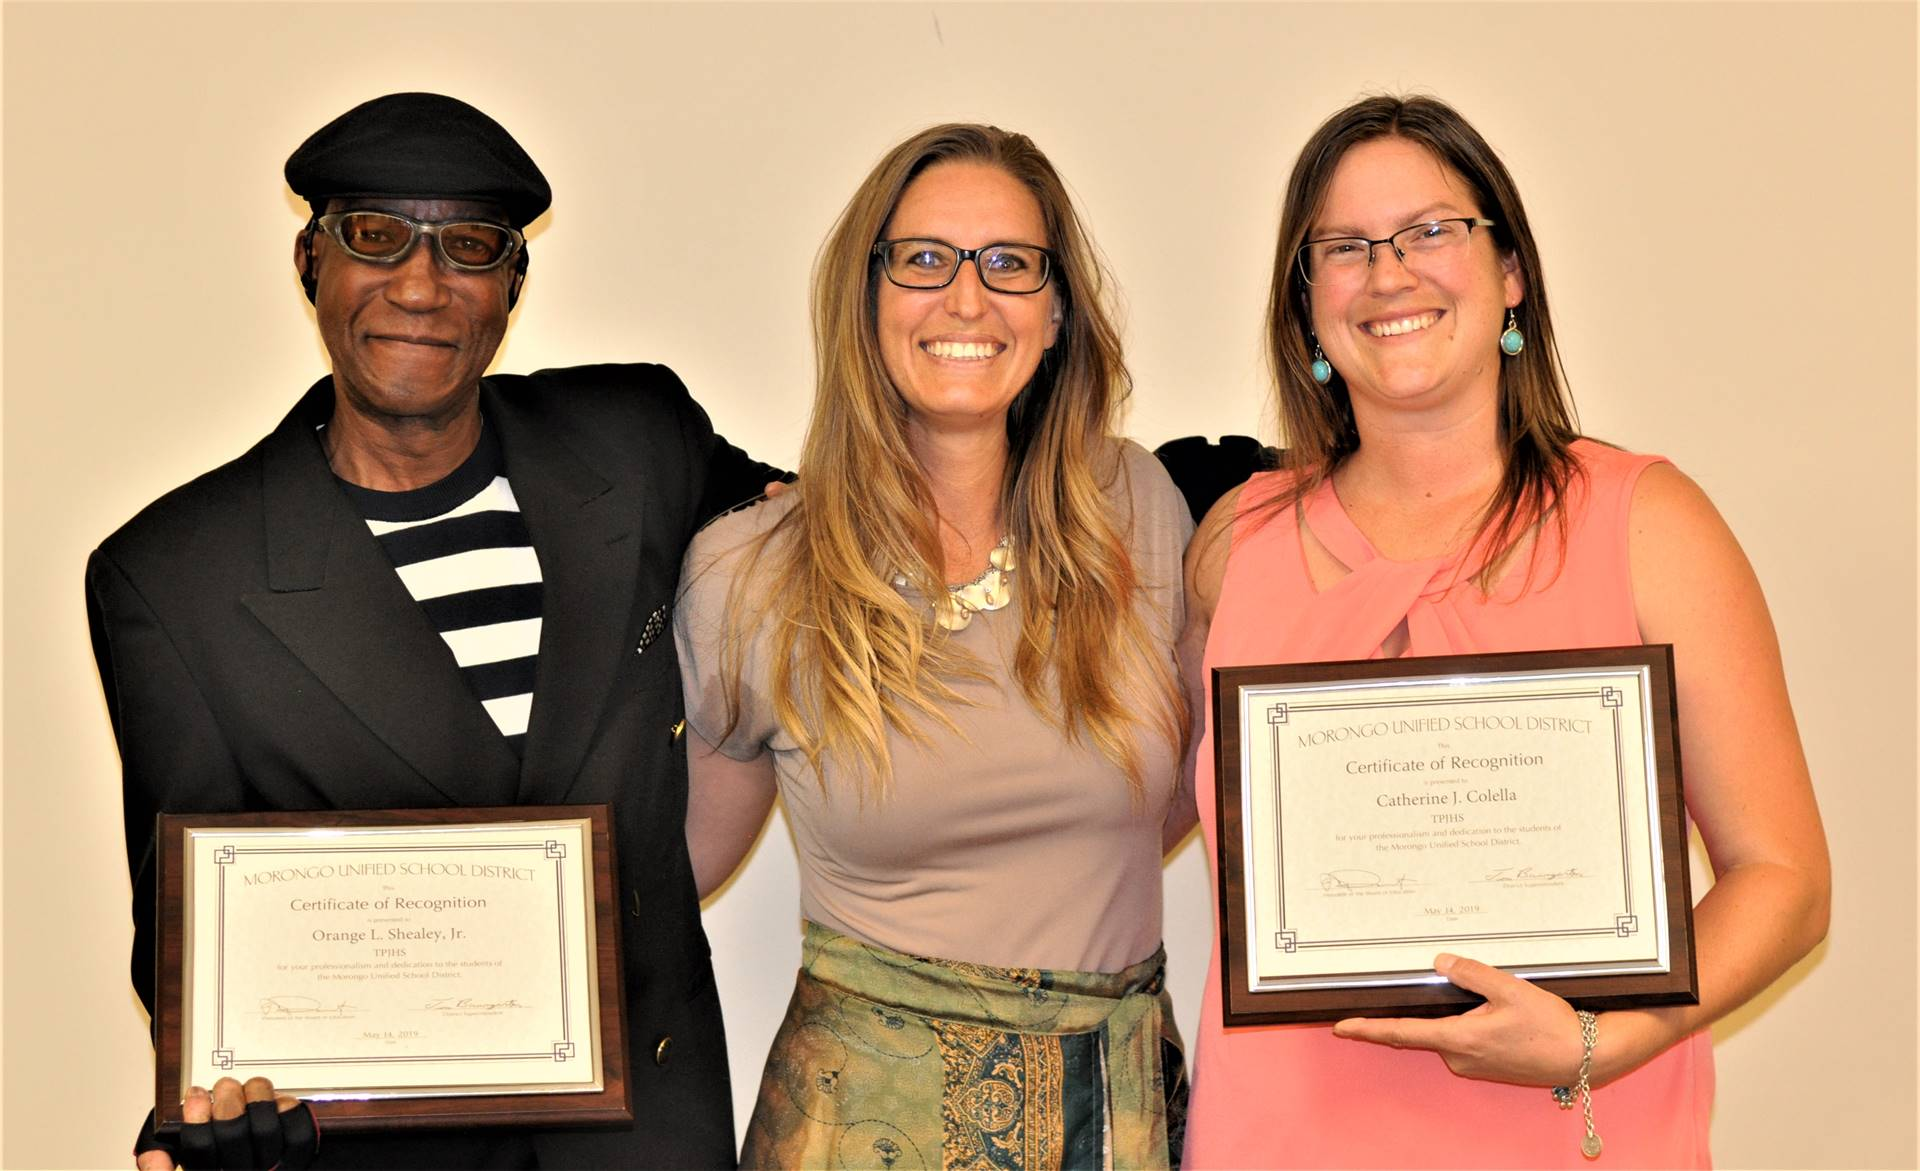 TPJHS:  Orange Shealey, Jr., Stacy Smalling, Catherine Colella